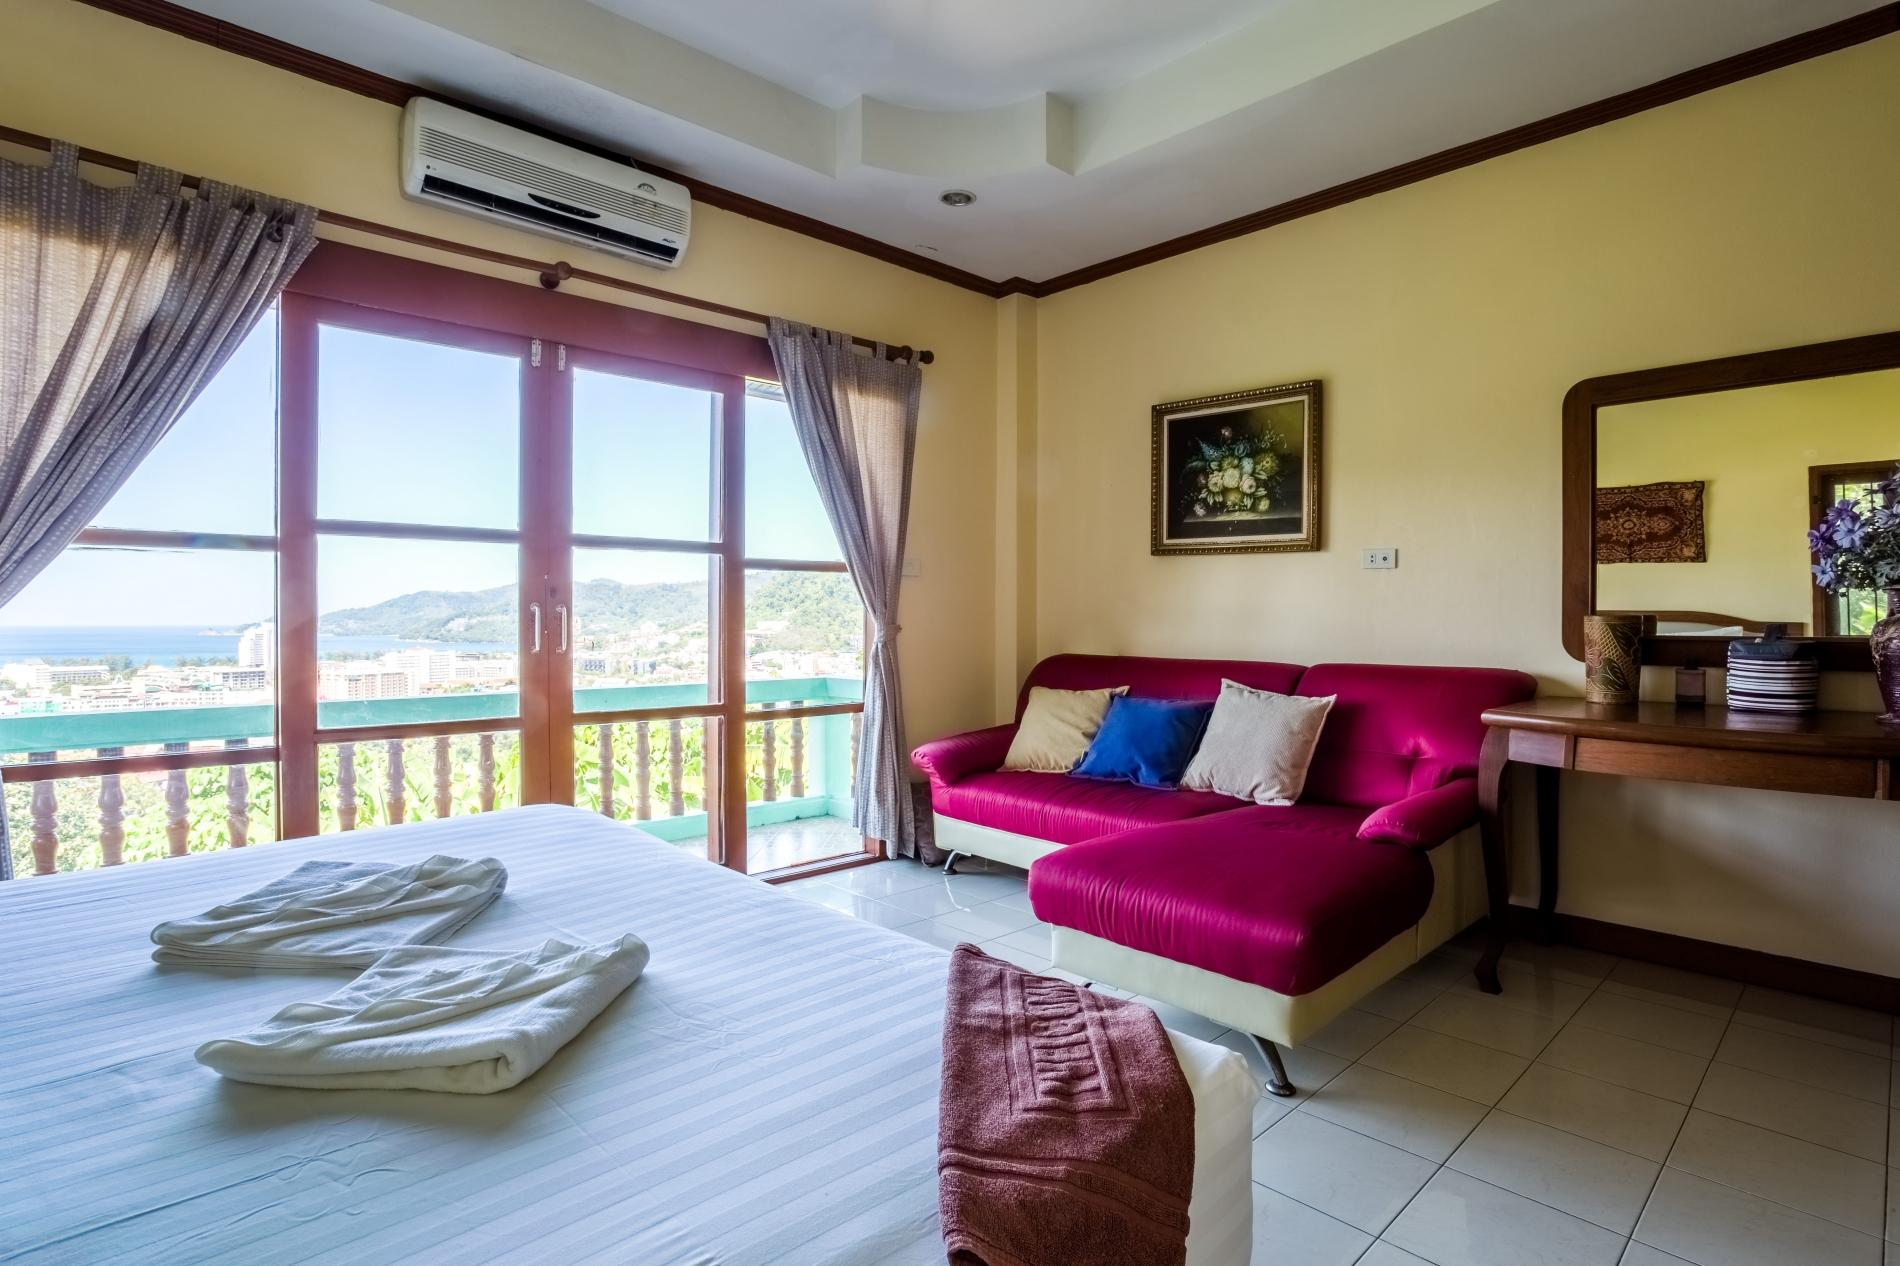 Apartment Vista Villa 1 - Seaview private pool villa in Patong for 9 people  photo 18467558